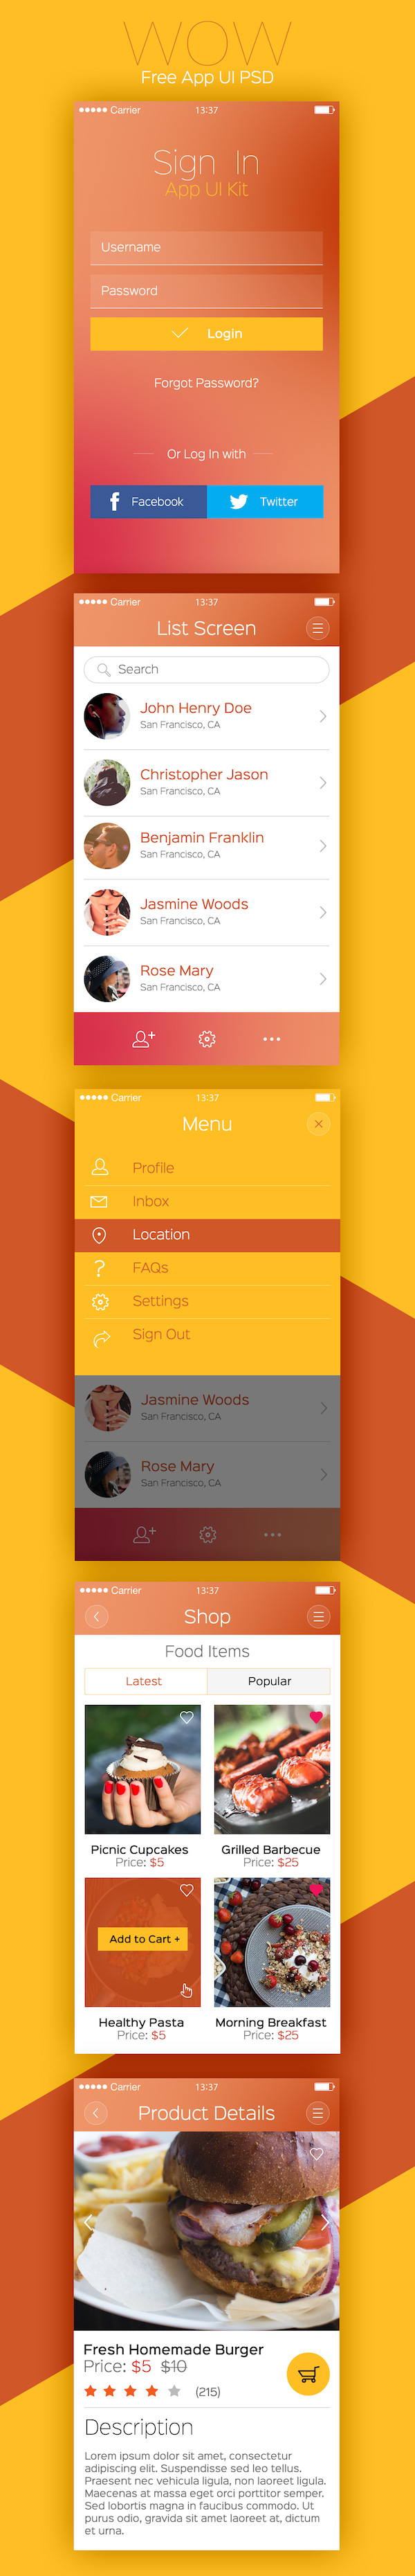 6 Mobile App Design PSD Free Download Images